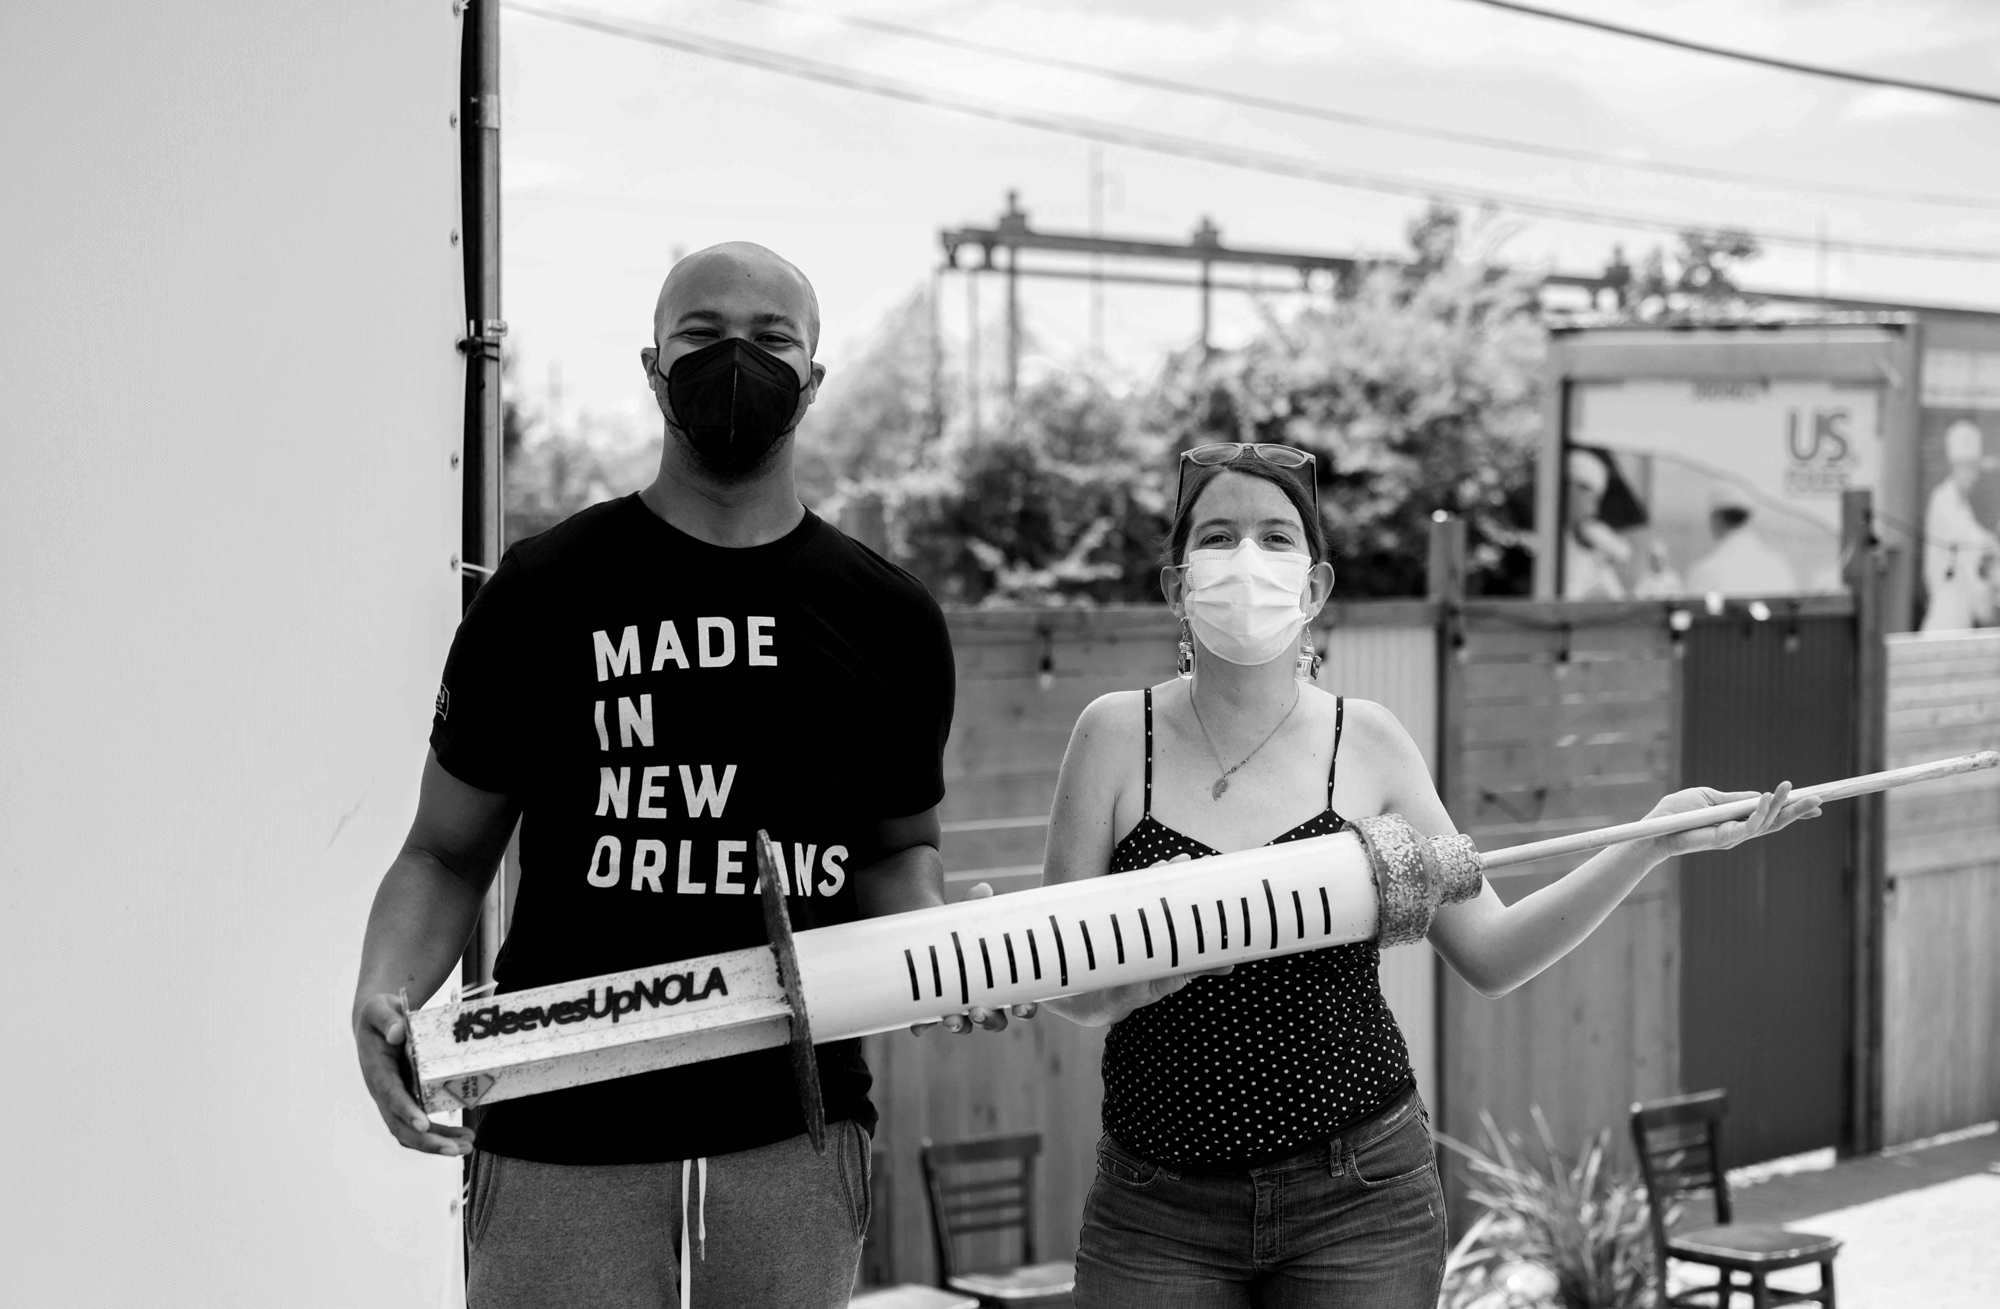 """A black and white photo of 2 people holding a giant, prop needle that reads """"#SleevesUpNOLA."""" The person on the left is dark-skinned and bald, and they're wearing a black mask and a black shirt that reads """"Made in New Orleans."""" The person on the right is light-skinned and is wearing a polka-dotted tank top and jeans and a white mask. Their hair is pulled back and they have sunglasses on the top of their head. Photo by Katie Sikora."""